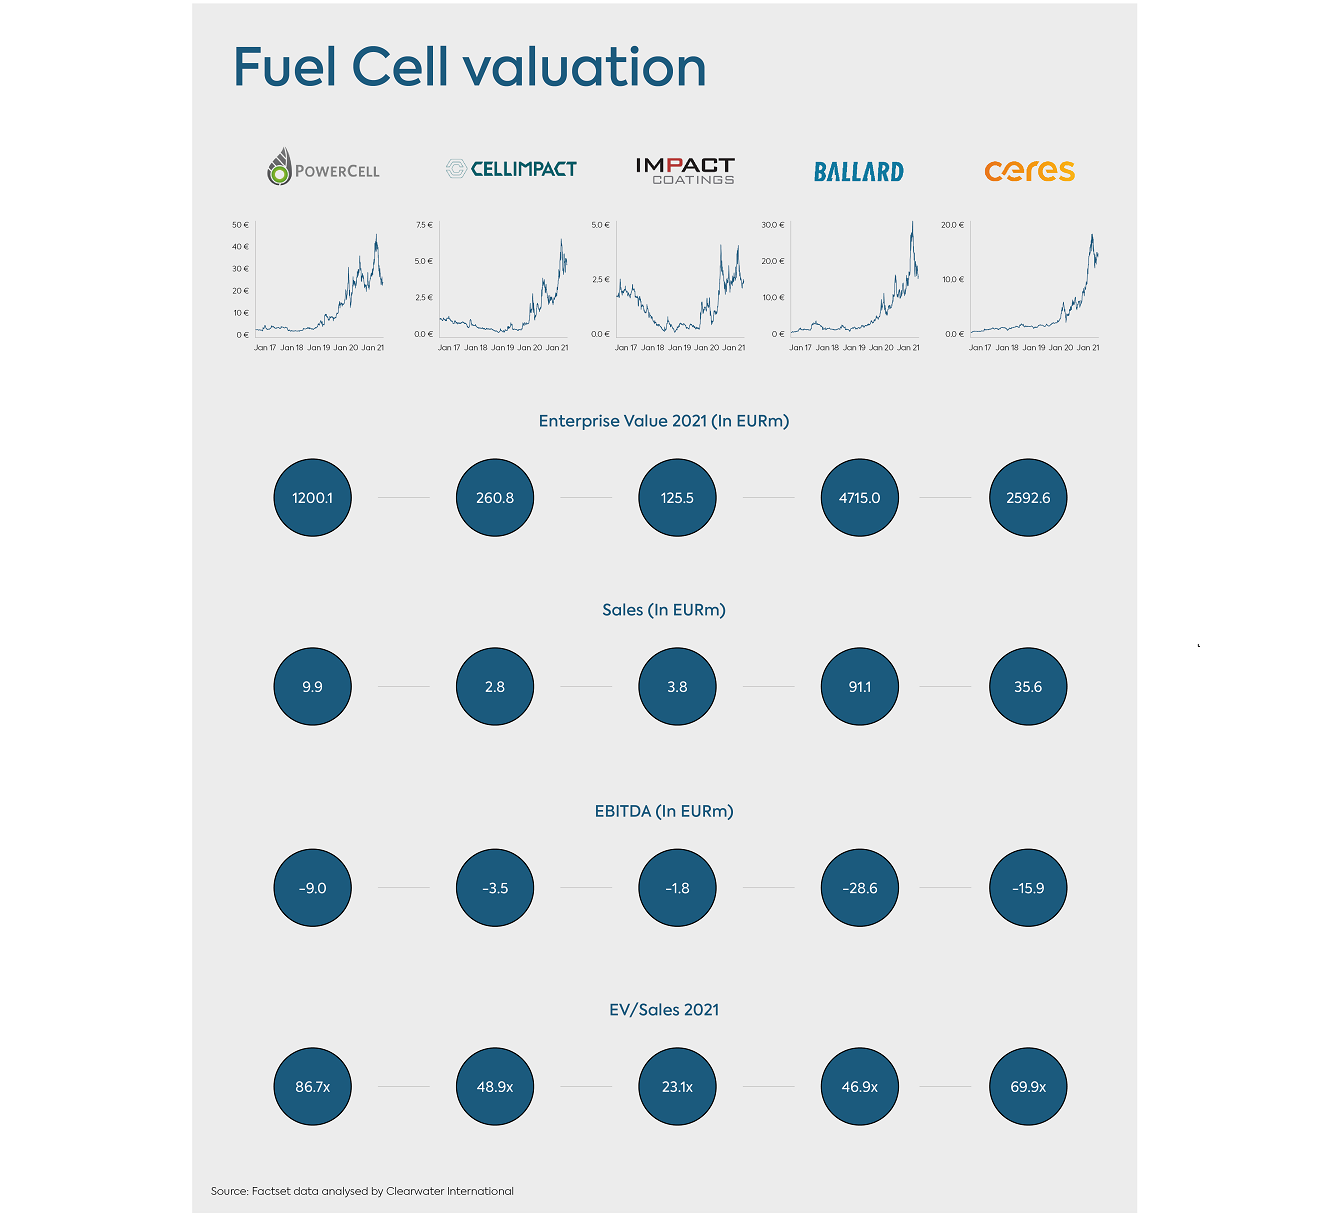 Fuel Cell Valuation